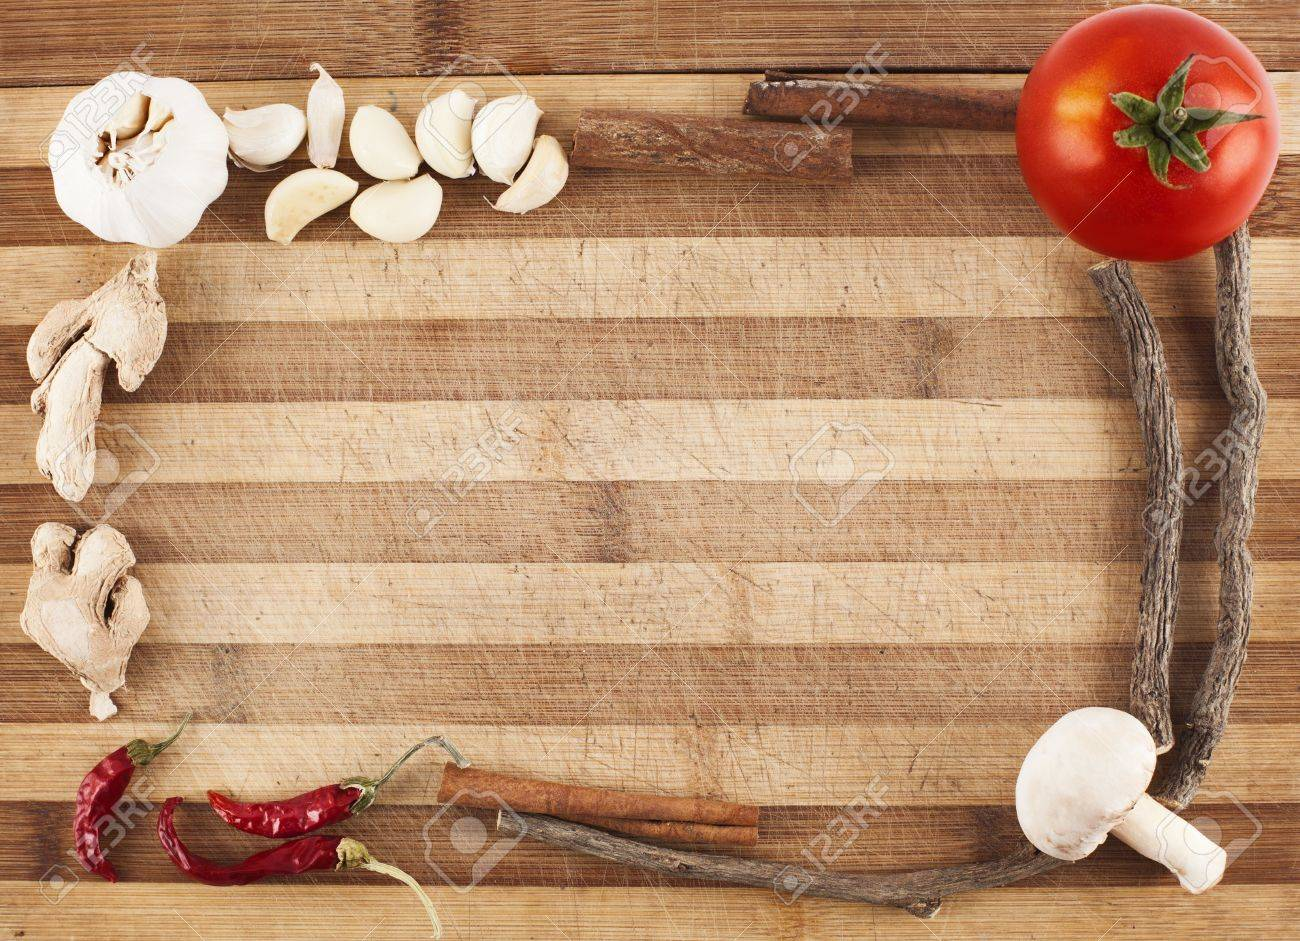 frame made of vegatables and spices on a used cutting board Stock Photo - 15860777